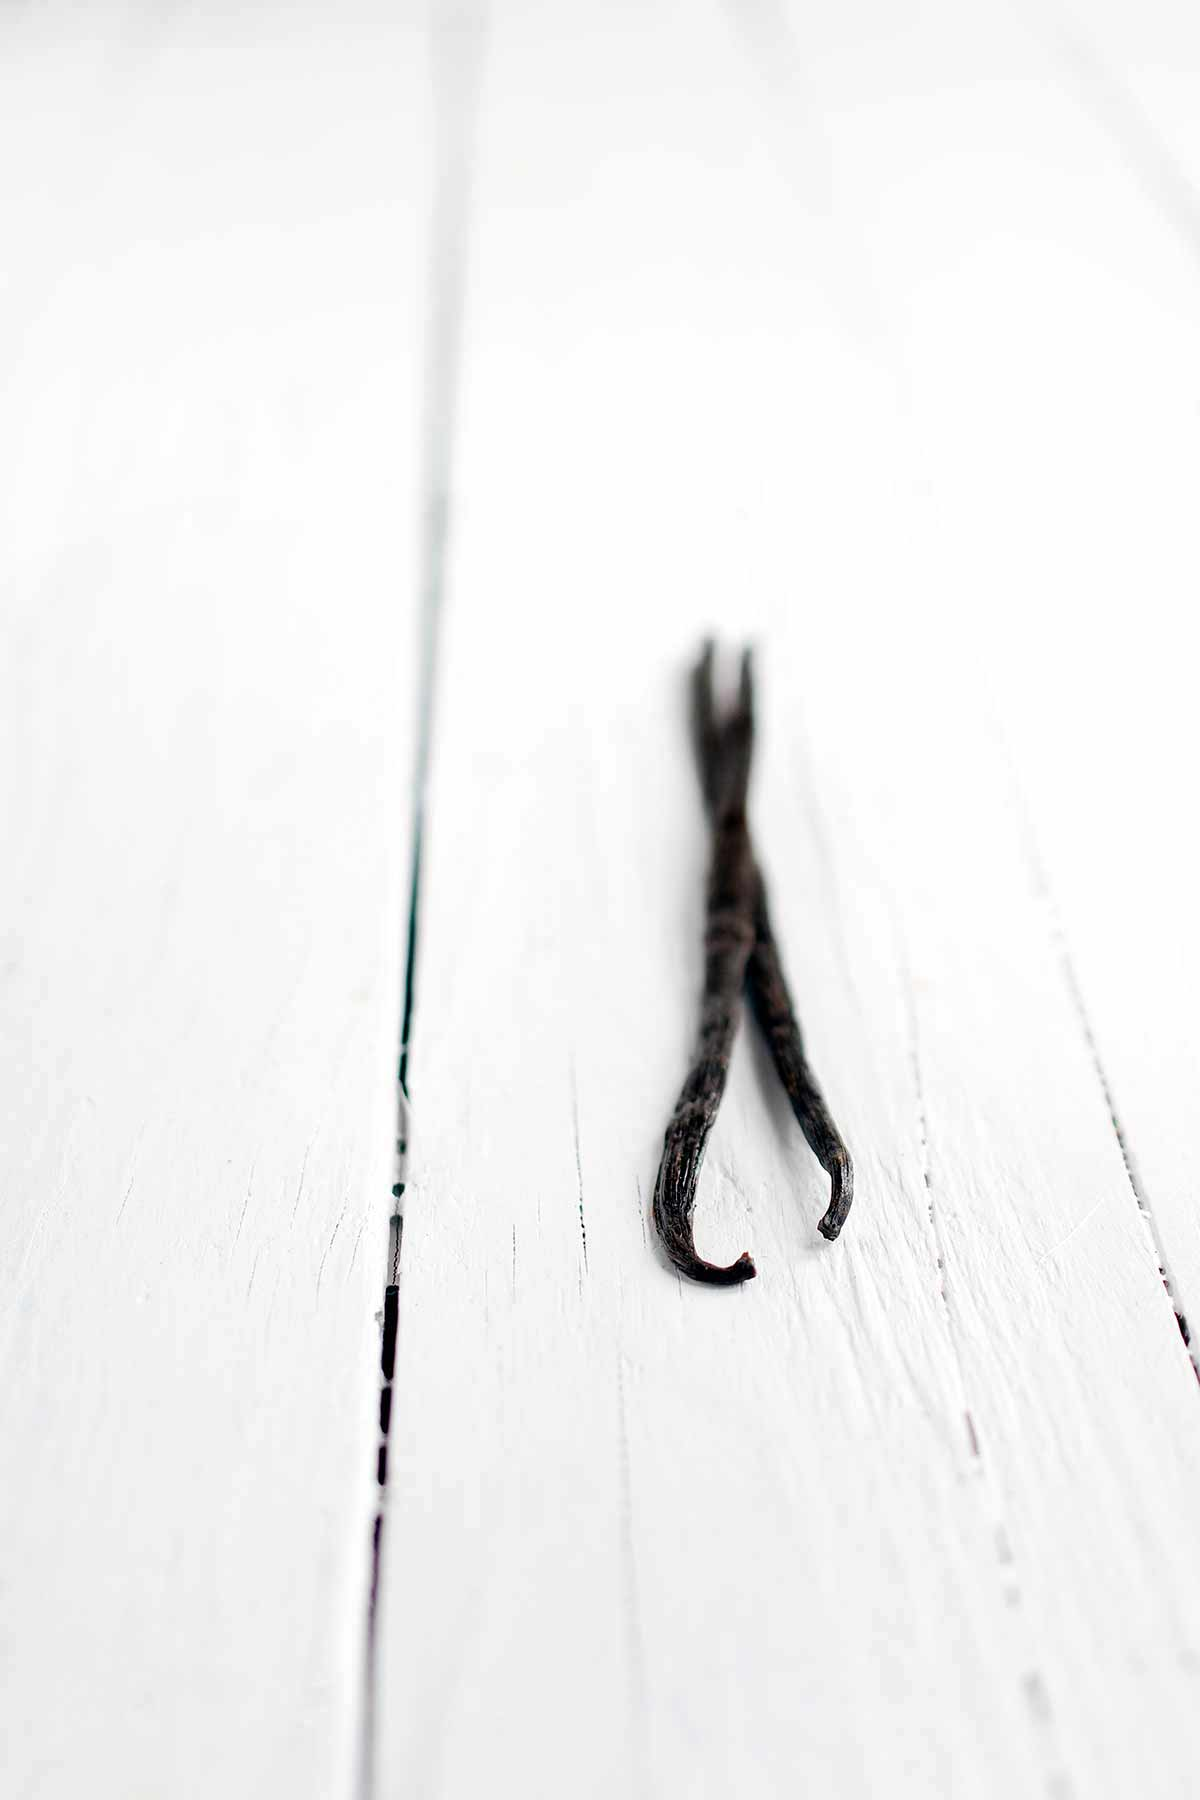 Two vanilla beans on a white backdrop.